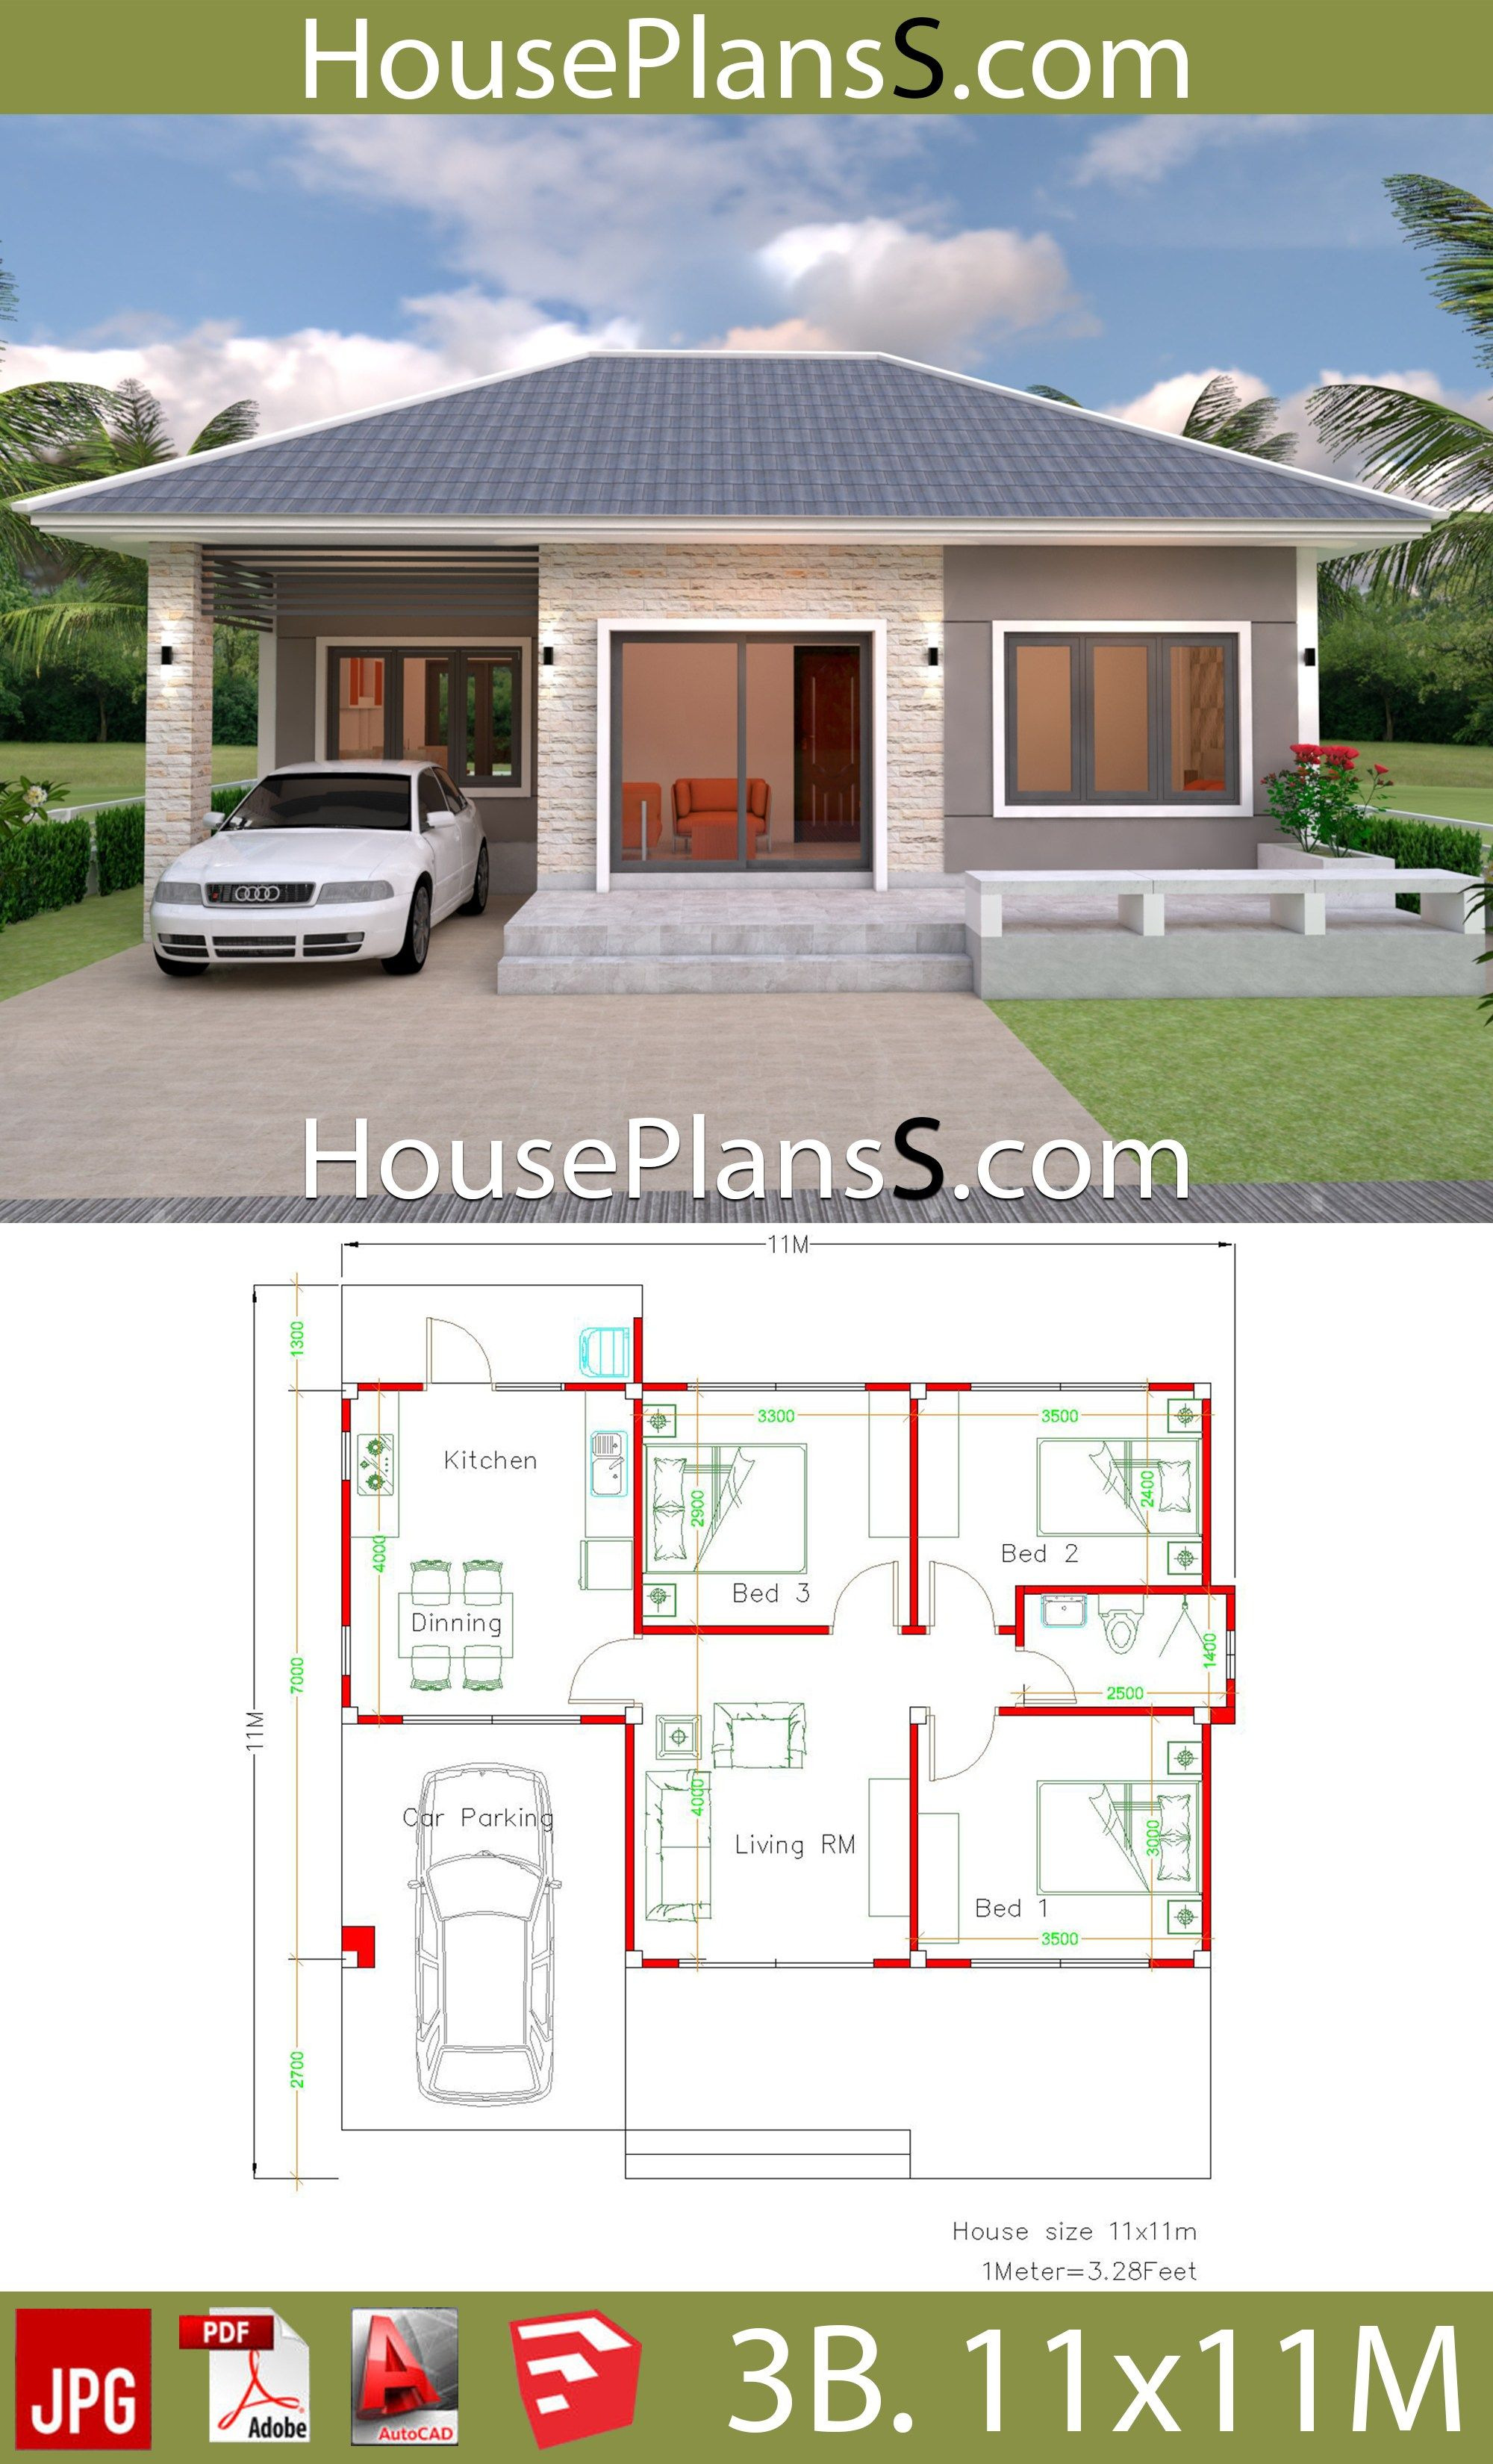 Building Plans for Houses Luxury Simple House Design Plans 11x11 with 3 Bedrooms Full Plans